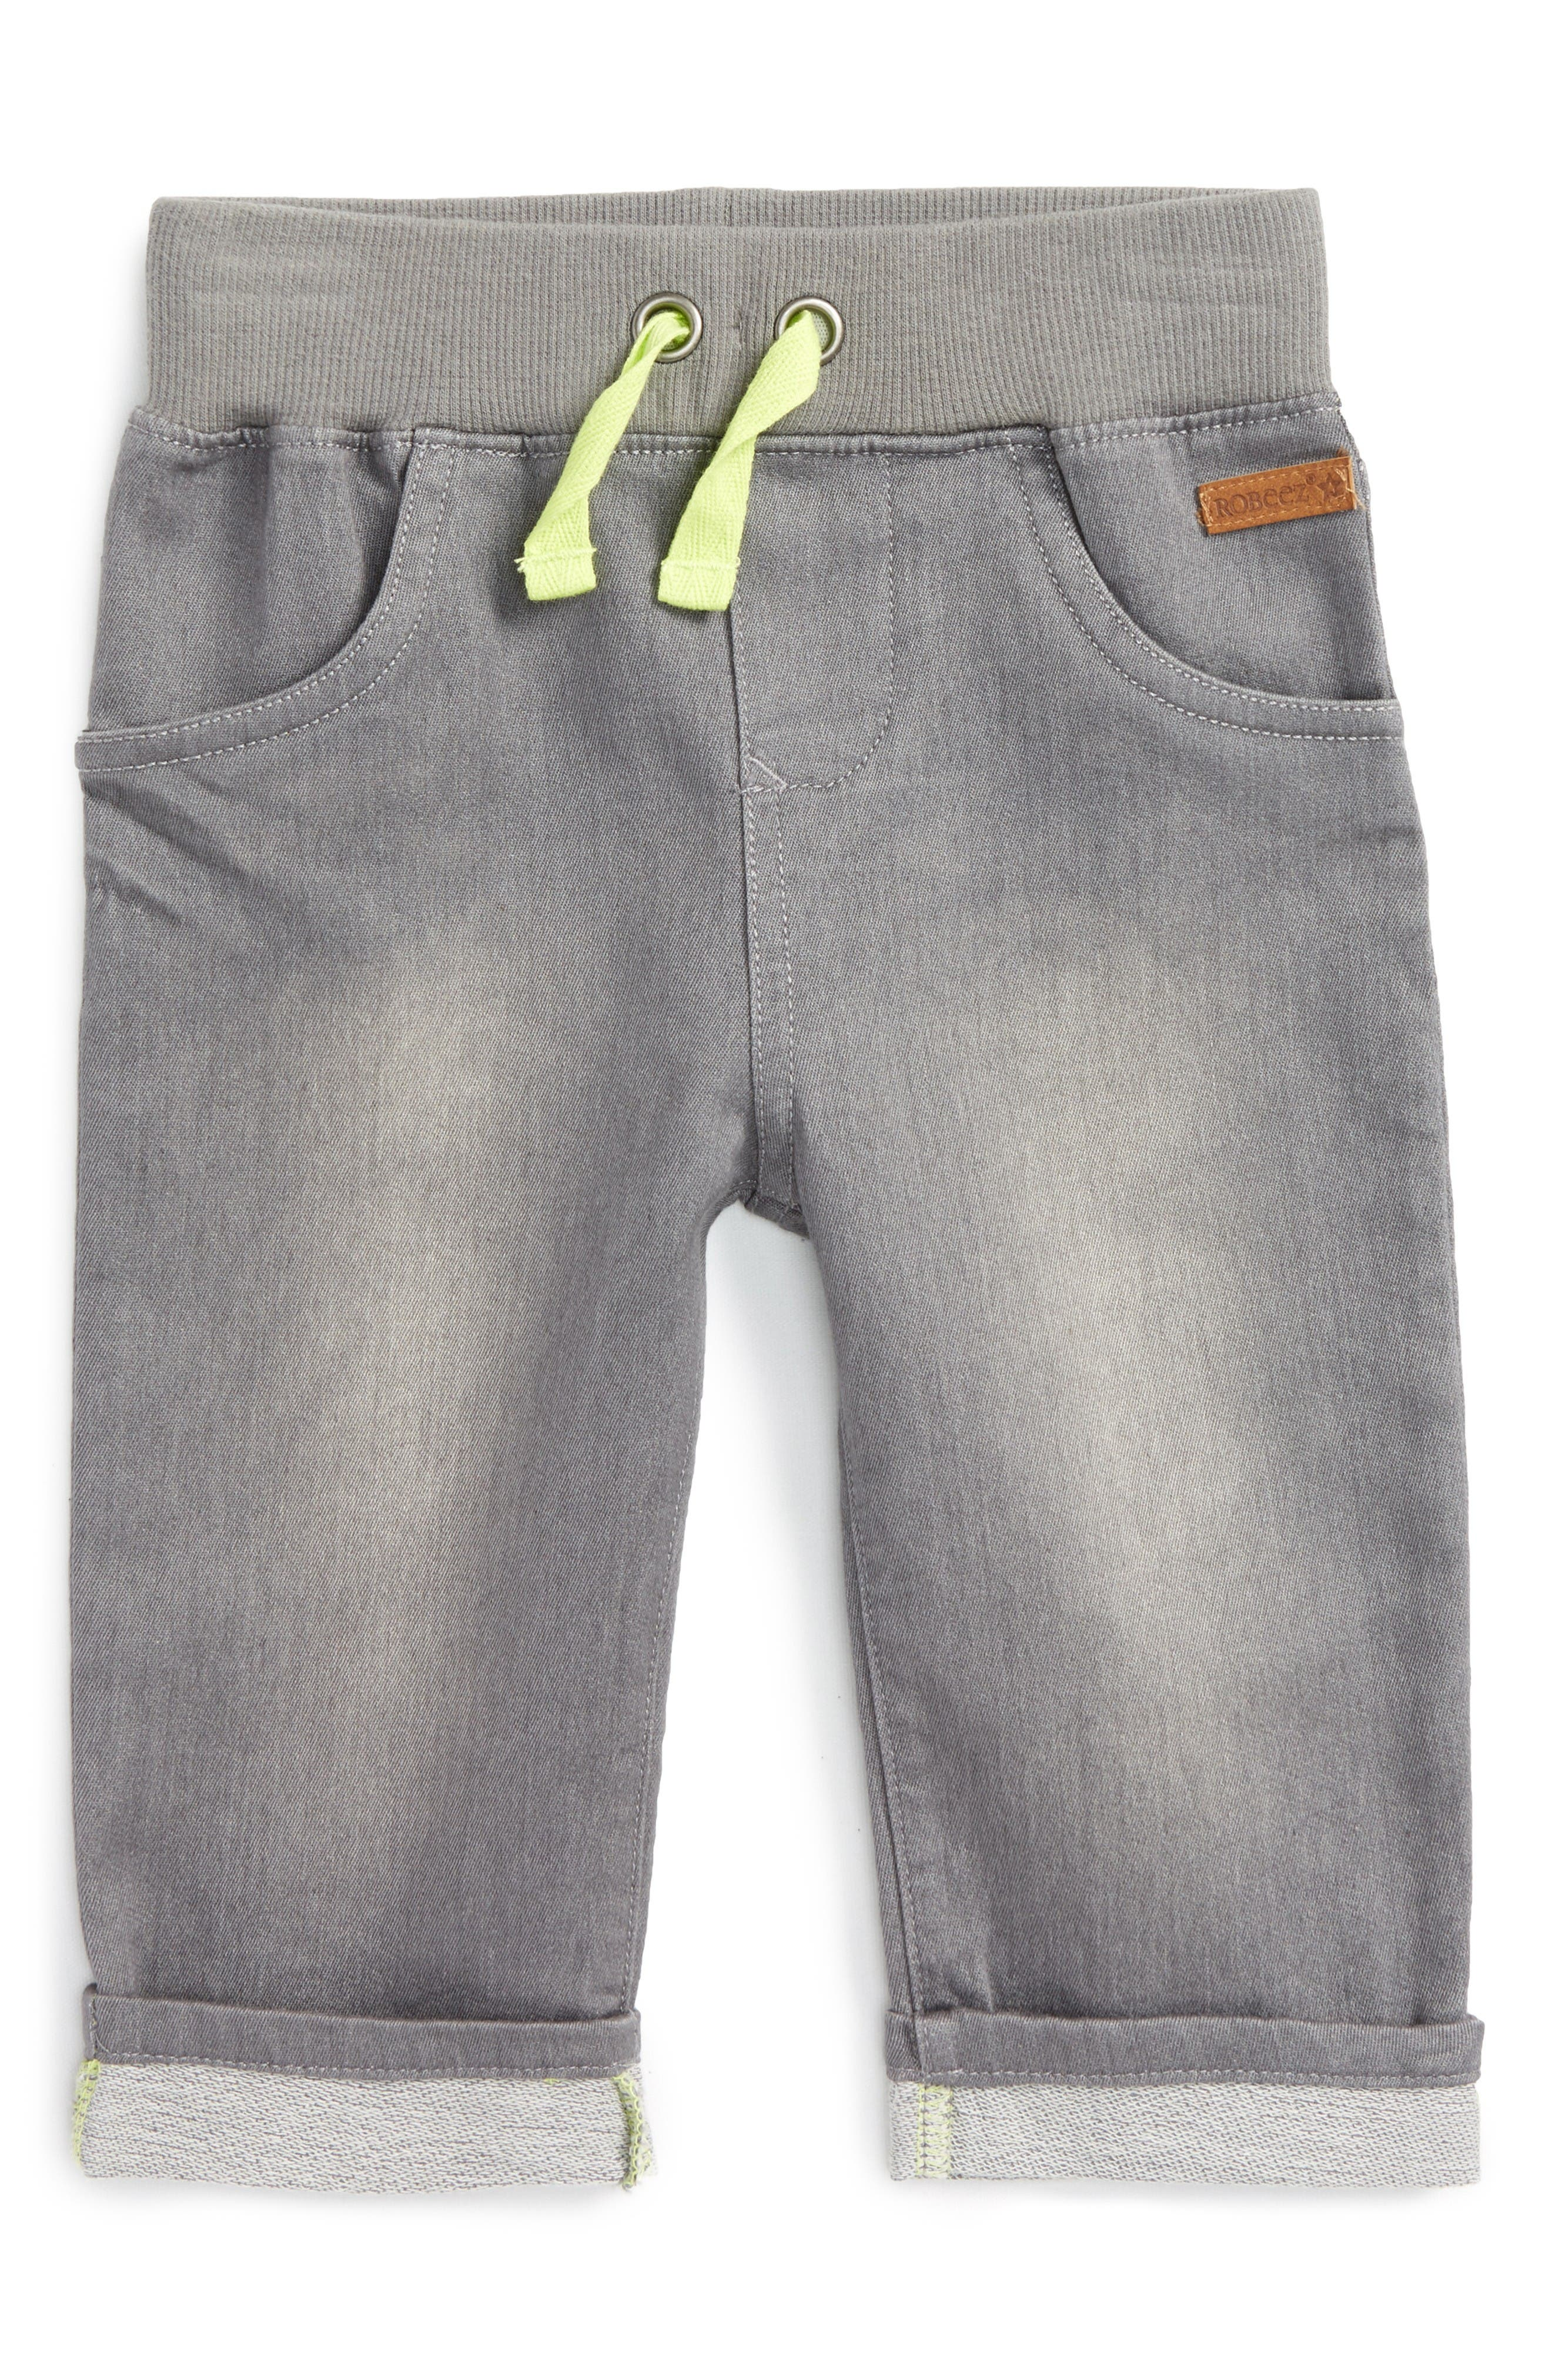 Drawstring Pants,                             Main thumbnail 1, color,                             Grey